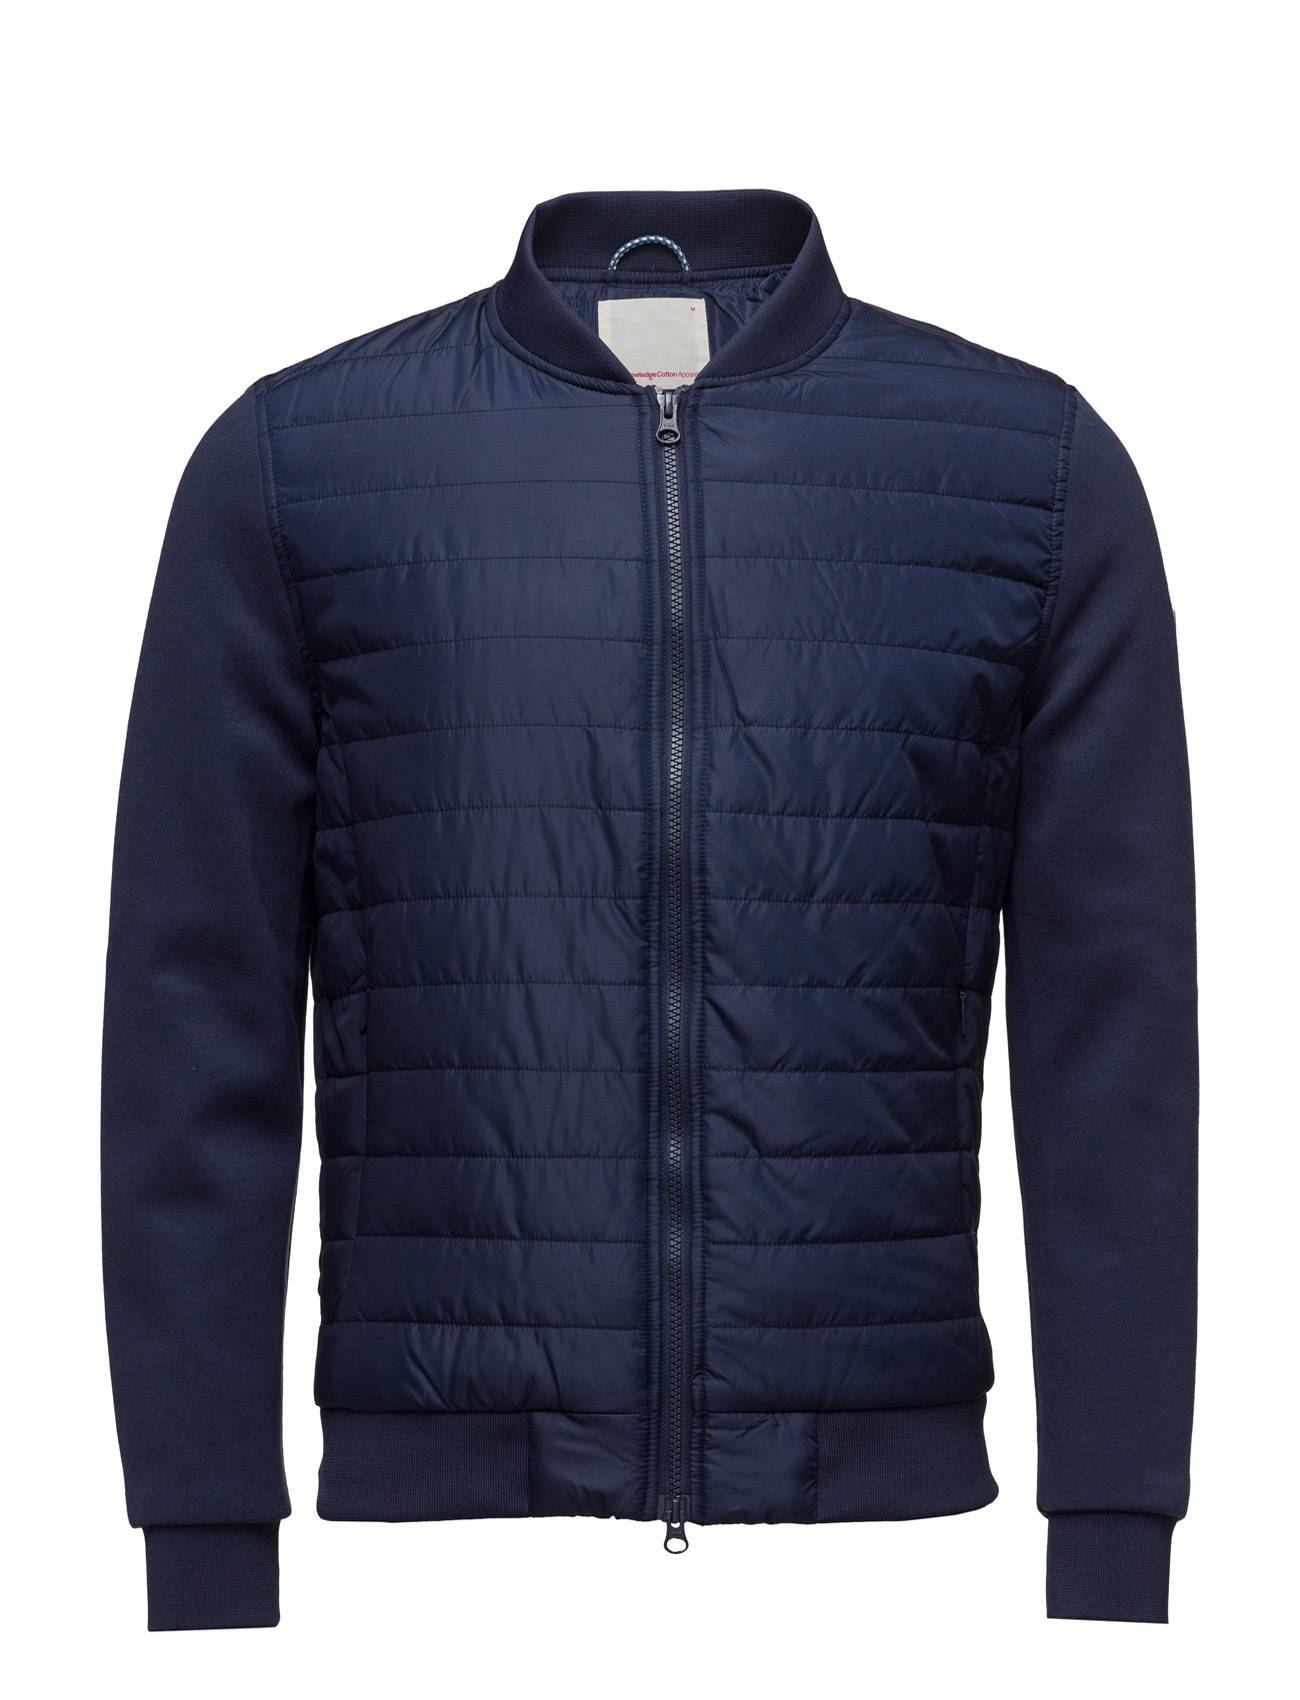 Knowledge Cotton Apparel Quilted Jacket W/Double Face Sleeve